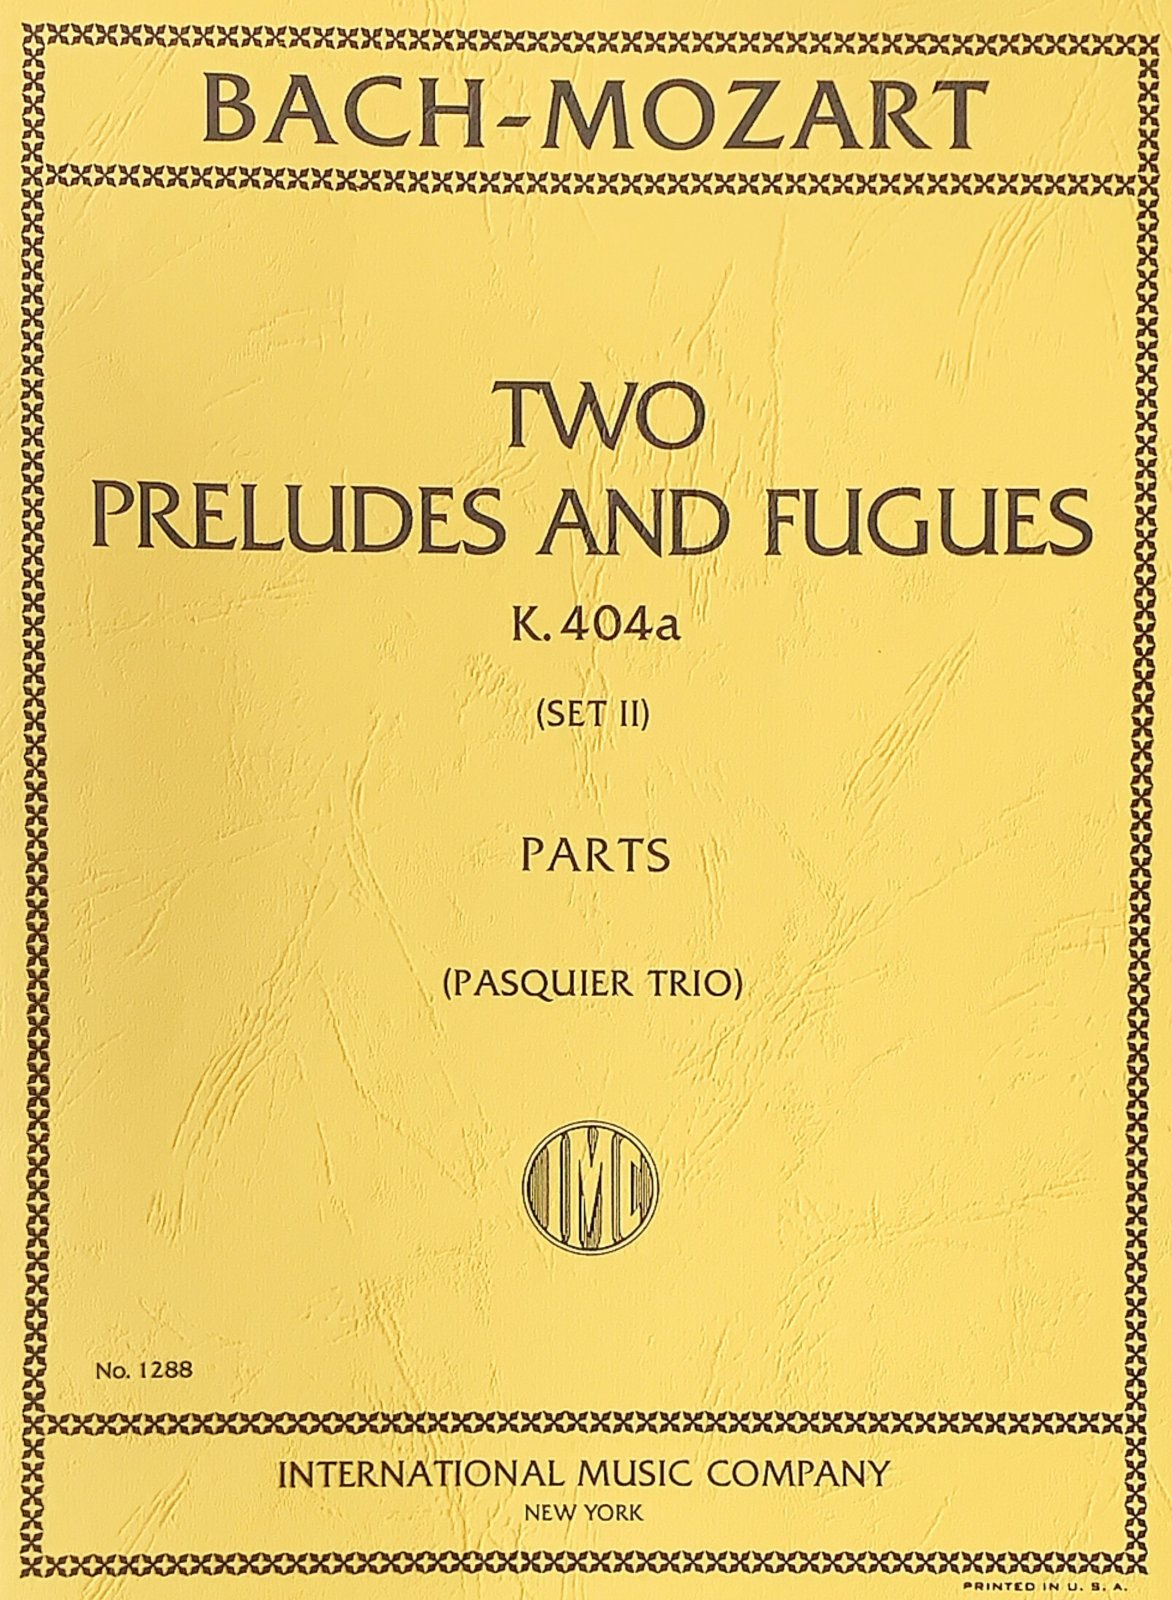 Two Preludes and Fugues Set 2 K 404a - Bach Mozart - Trio - International